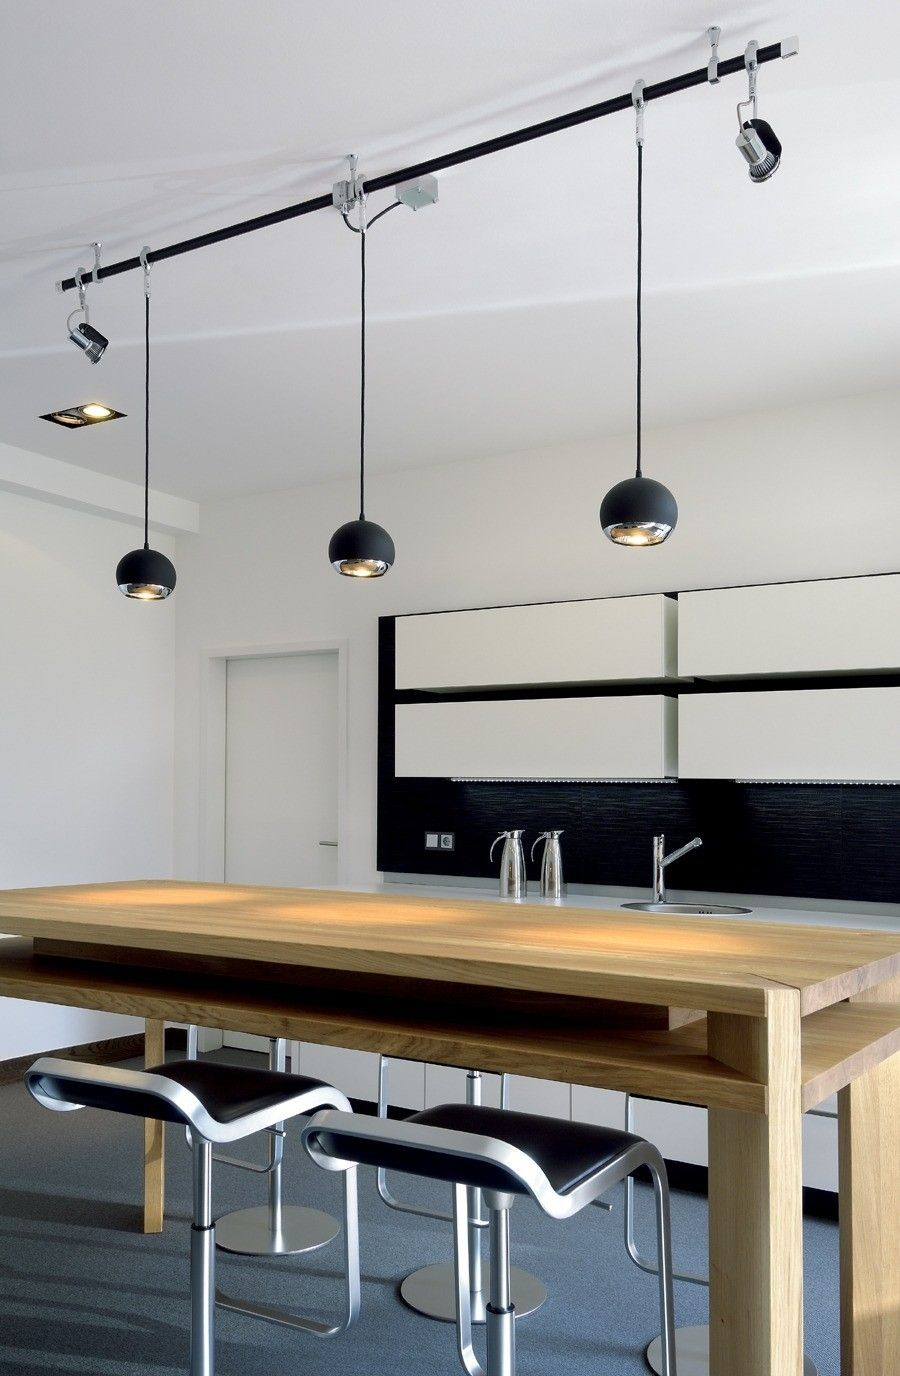 Cool track lighting for a kitchen pinteres cool track lighting for a kitchen aloadofball